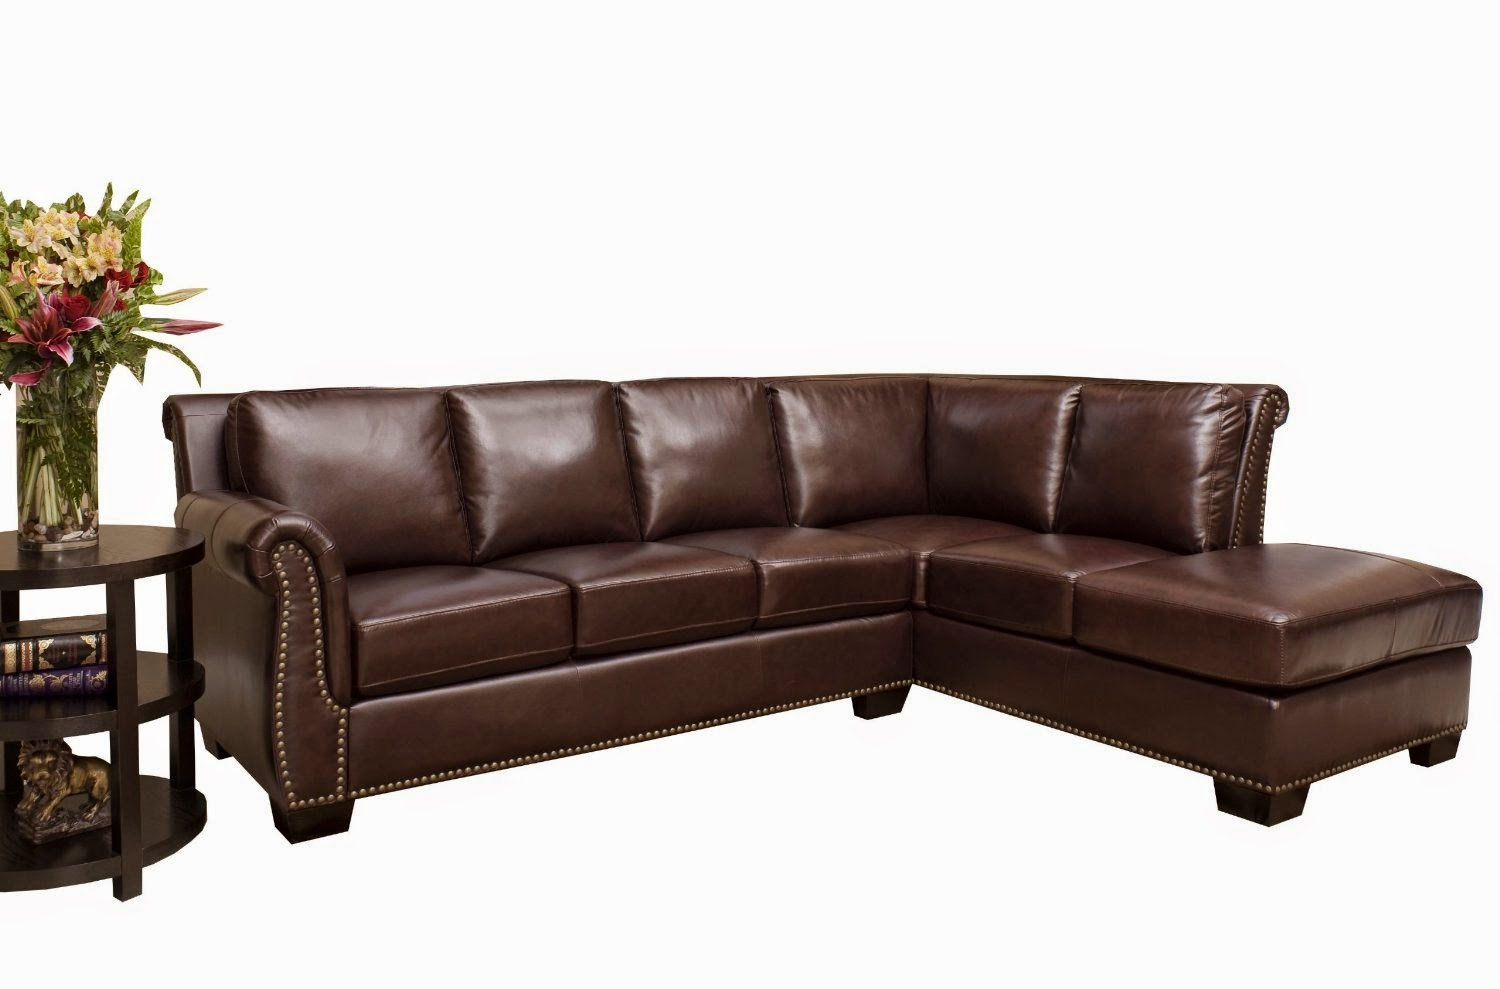 Leathers Sofa Sectional Sofas Free Delivery Leather